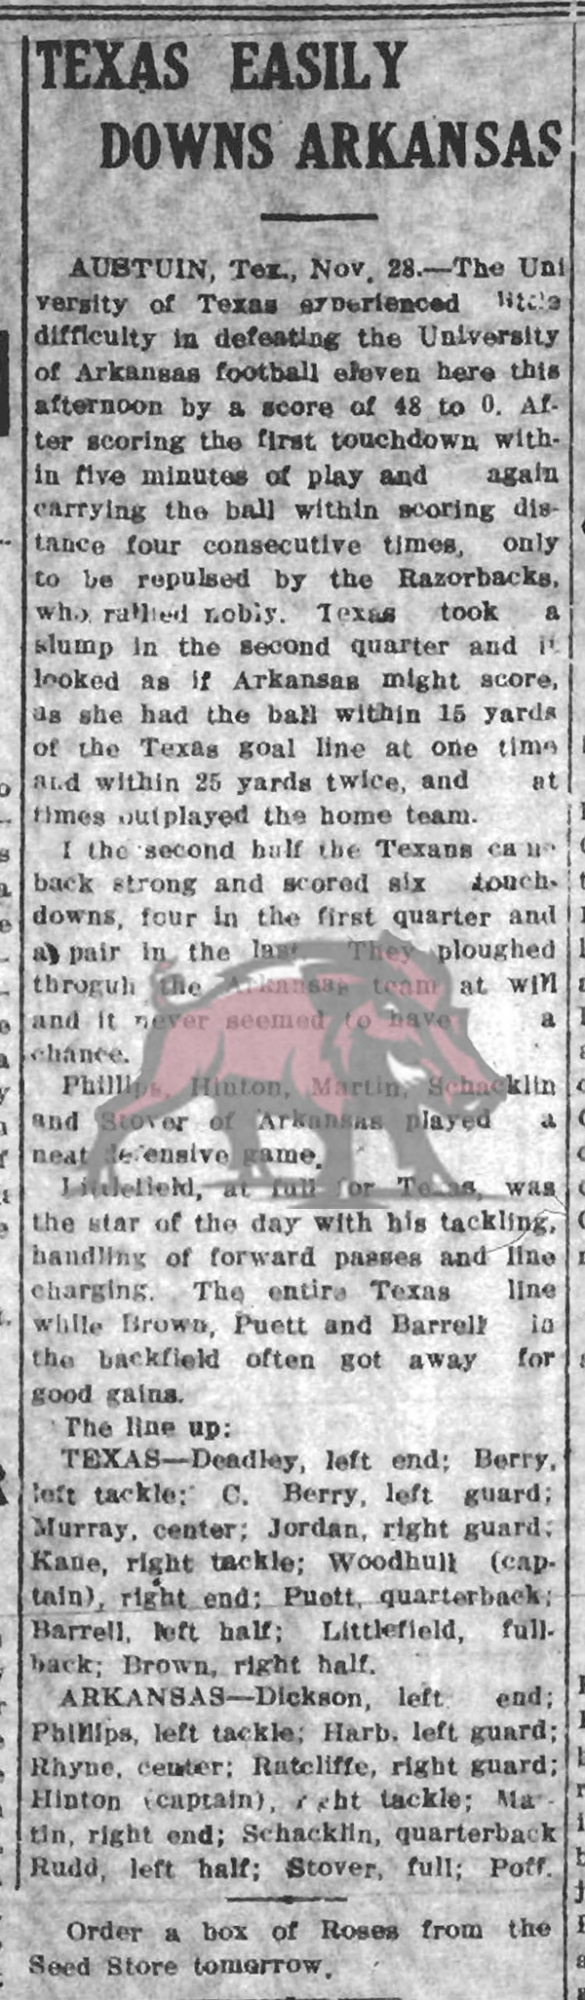 1912-11-29 Fayetteville Daily_Page 1 UA v. Texas